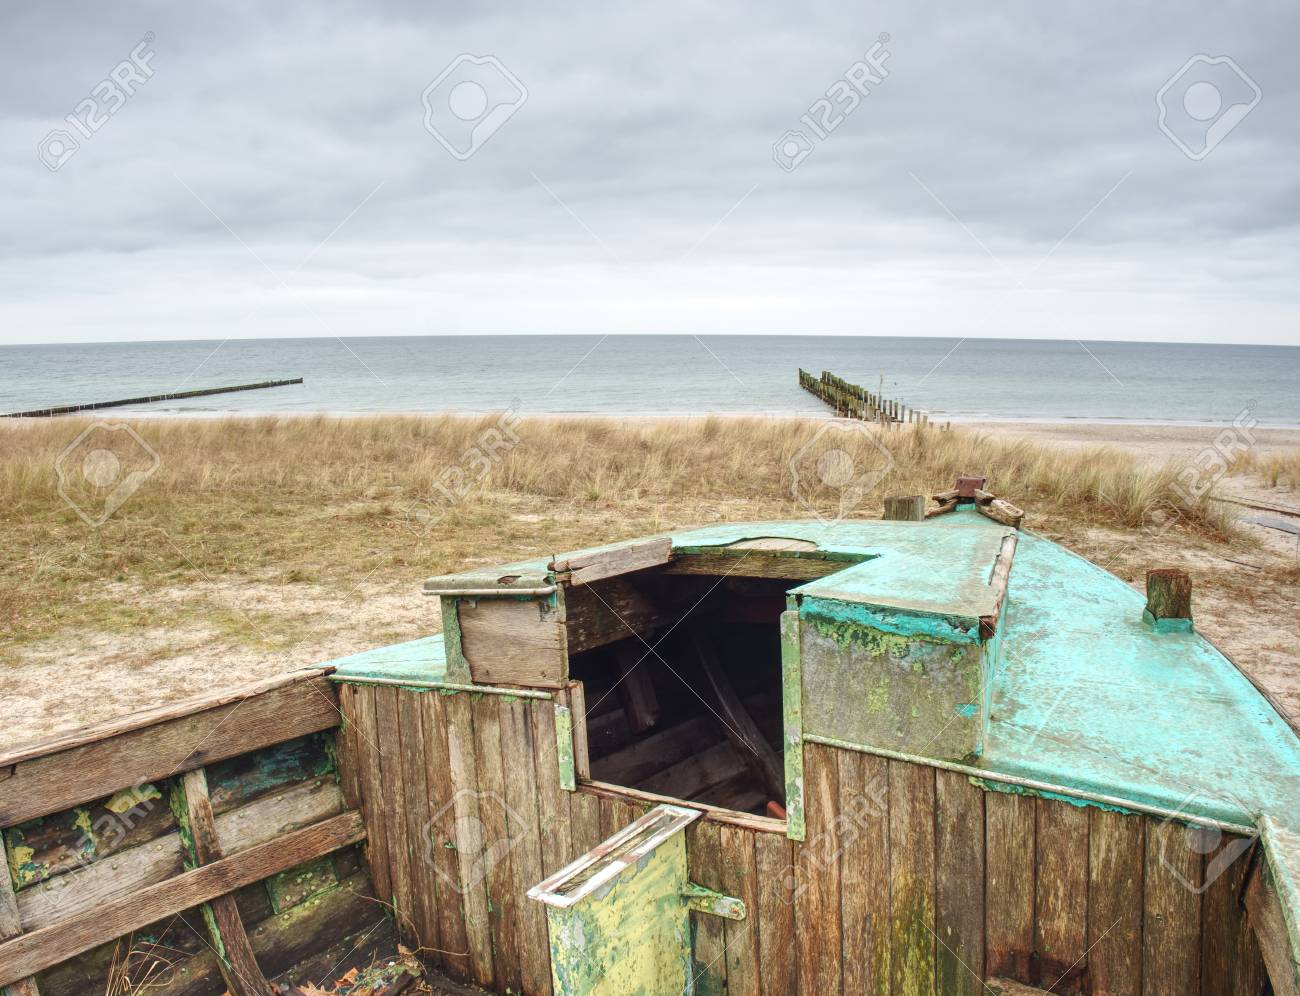 Abandoned wrecked boat stuck in sand  Old wooden boat on the